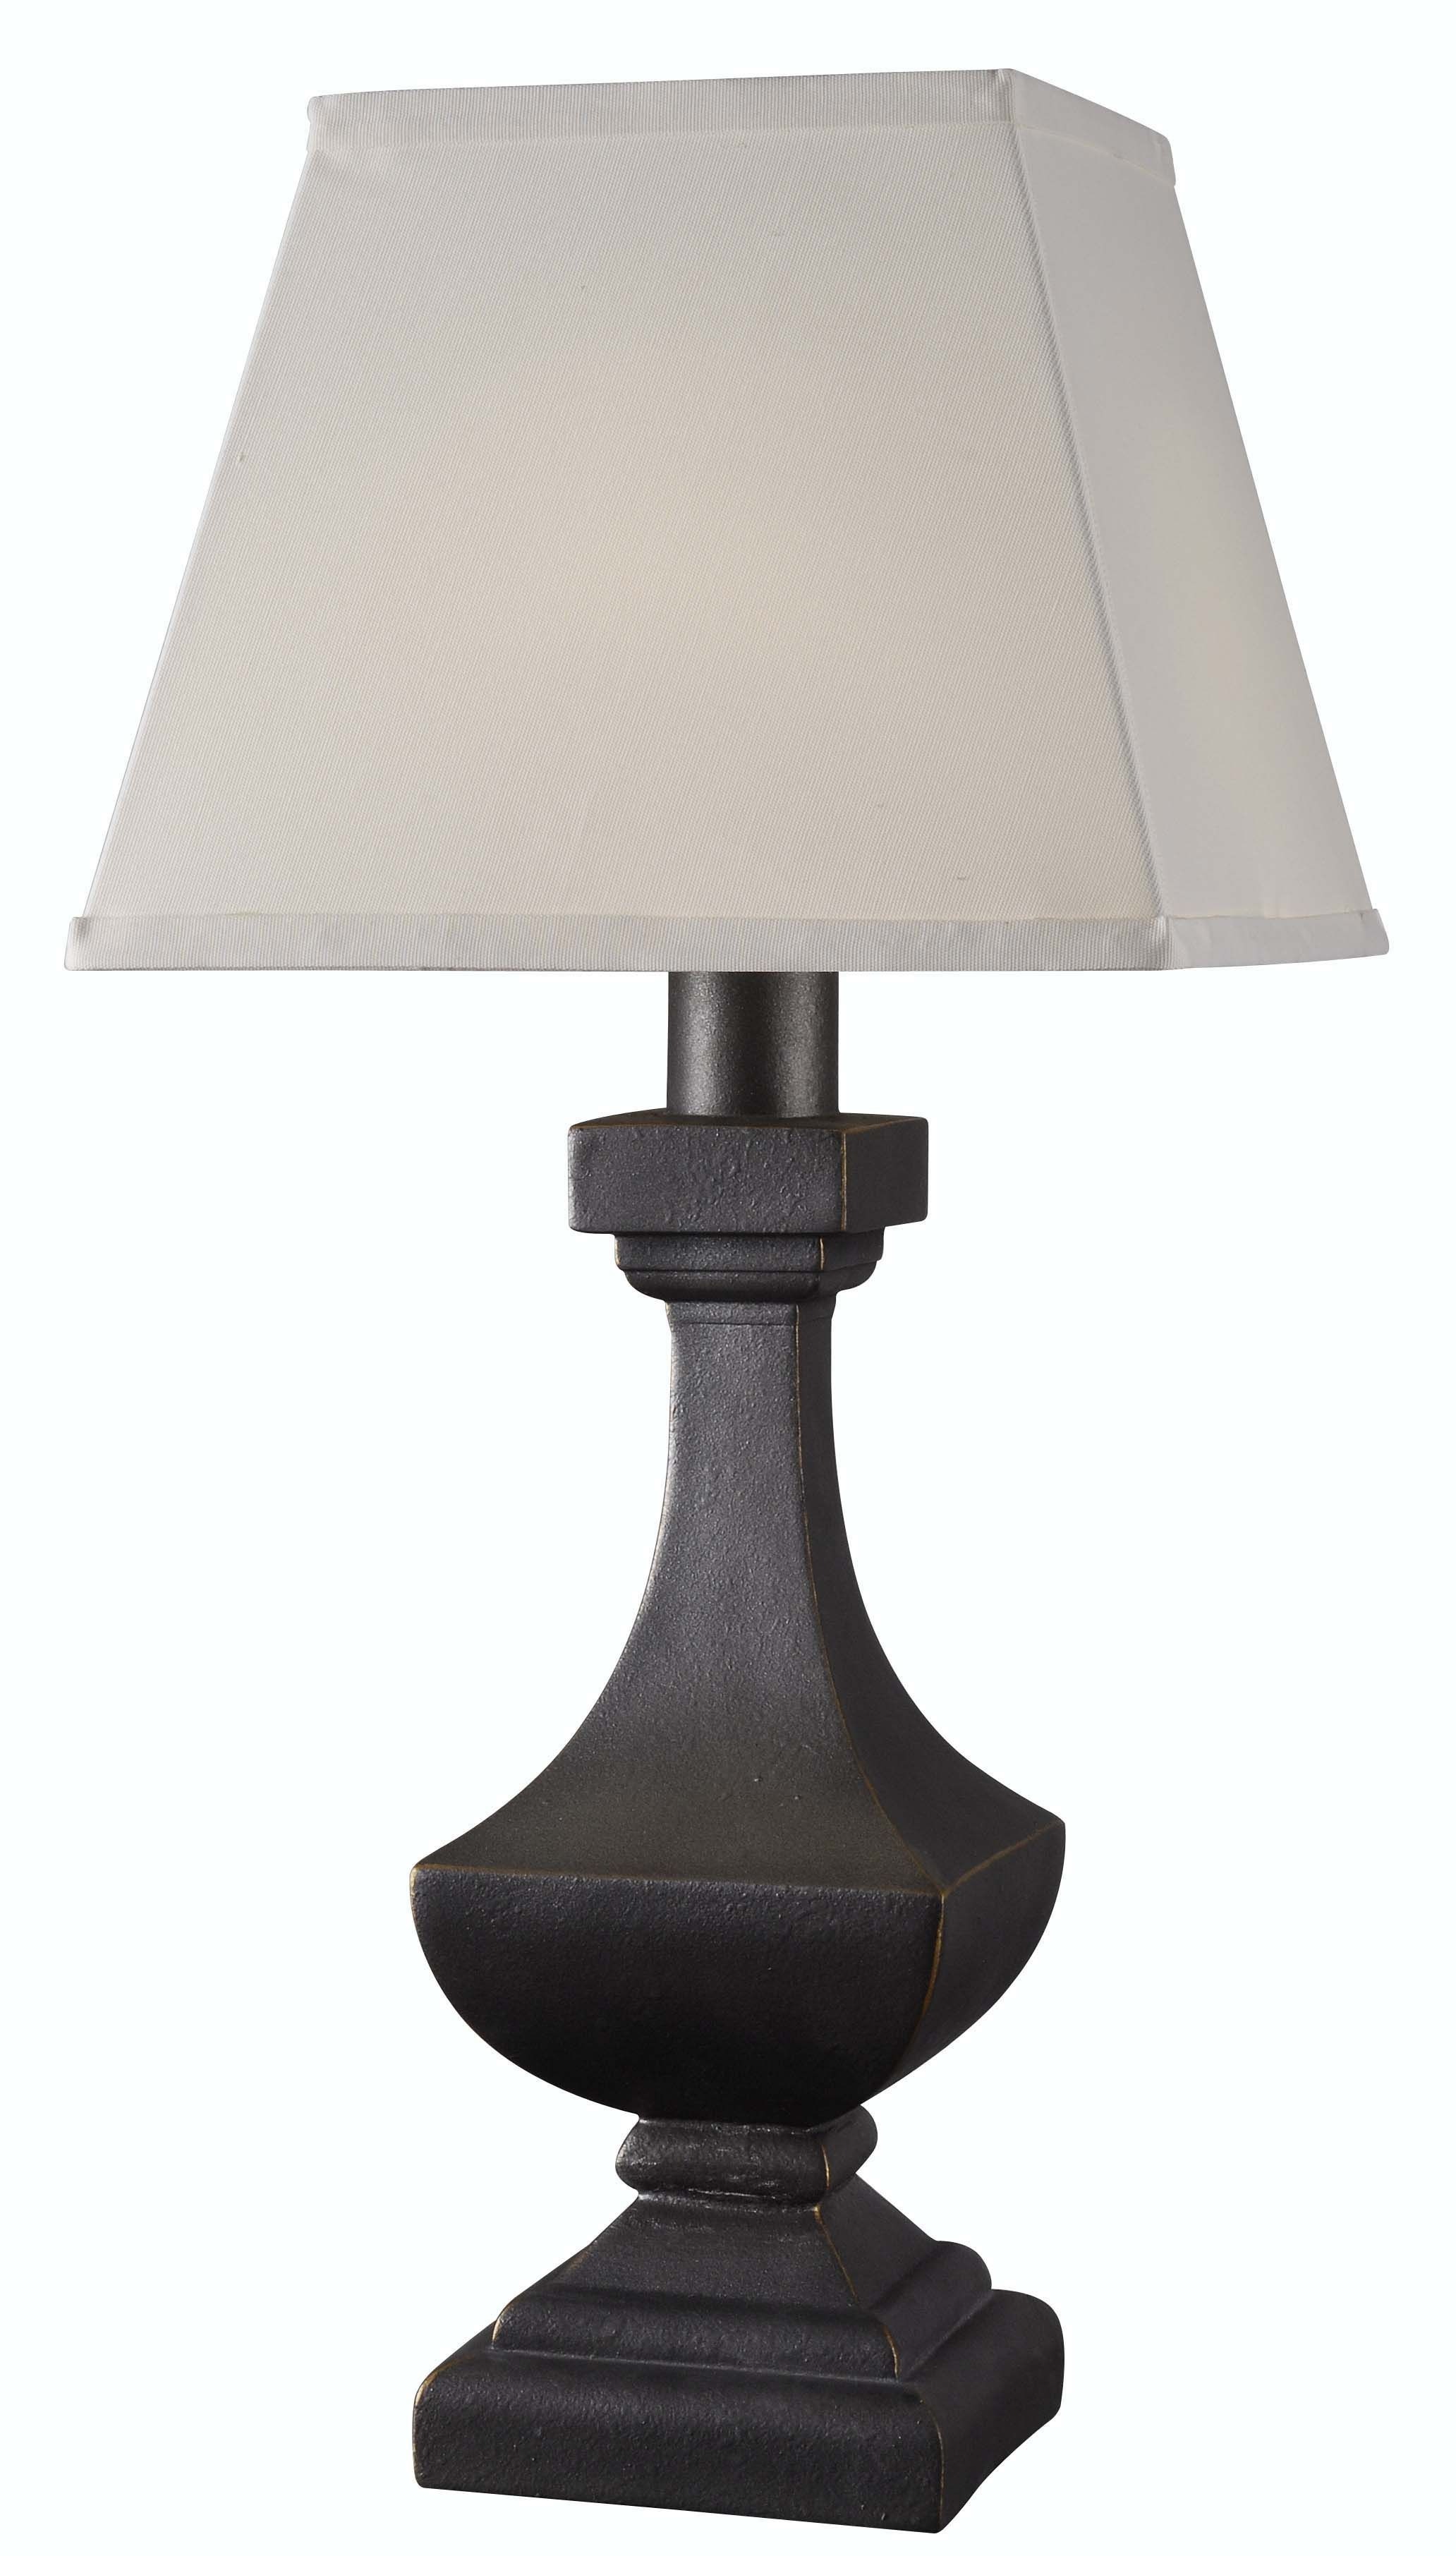 ... Solar Powered Table Lamps By Palladium Outdoor Solar Table Lamp From  Kenroy 32570wbz ...